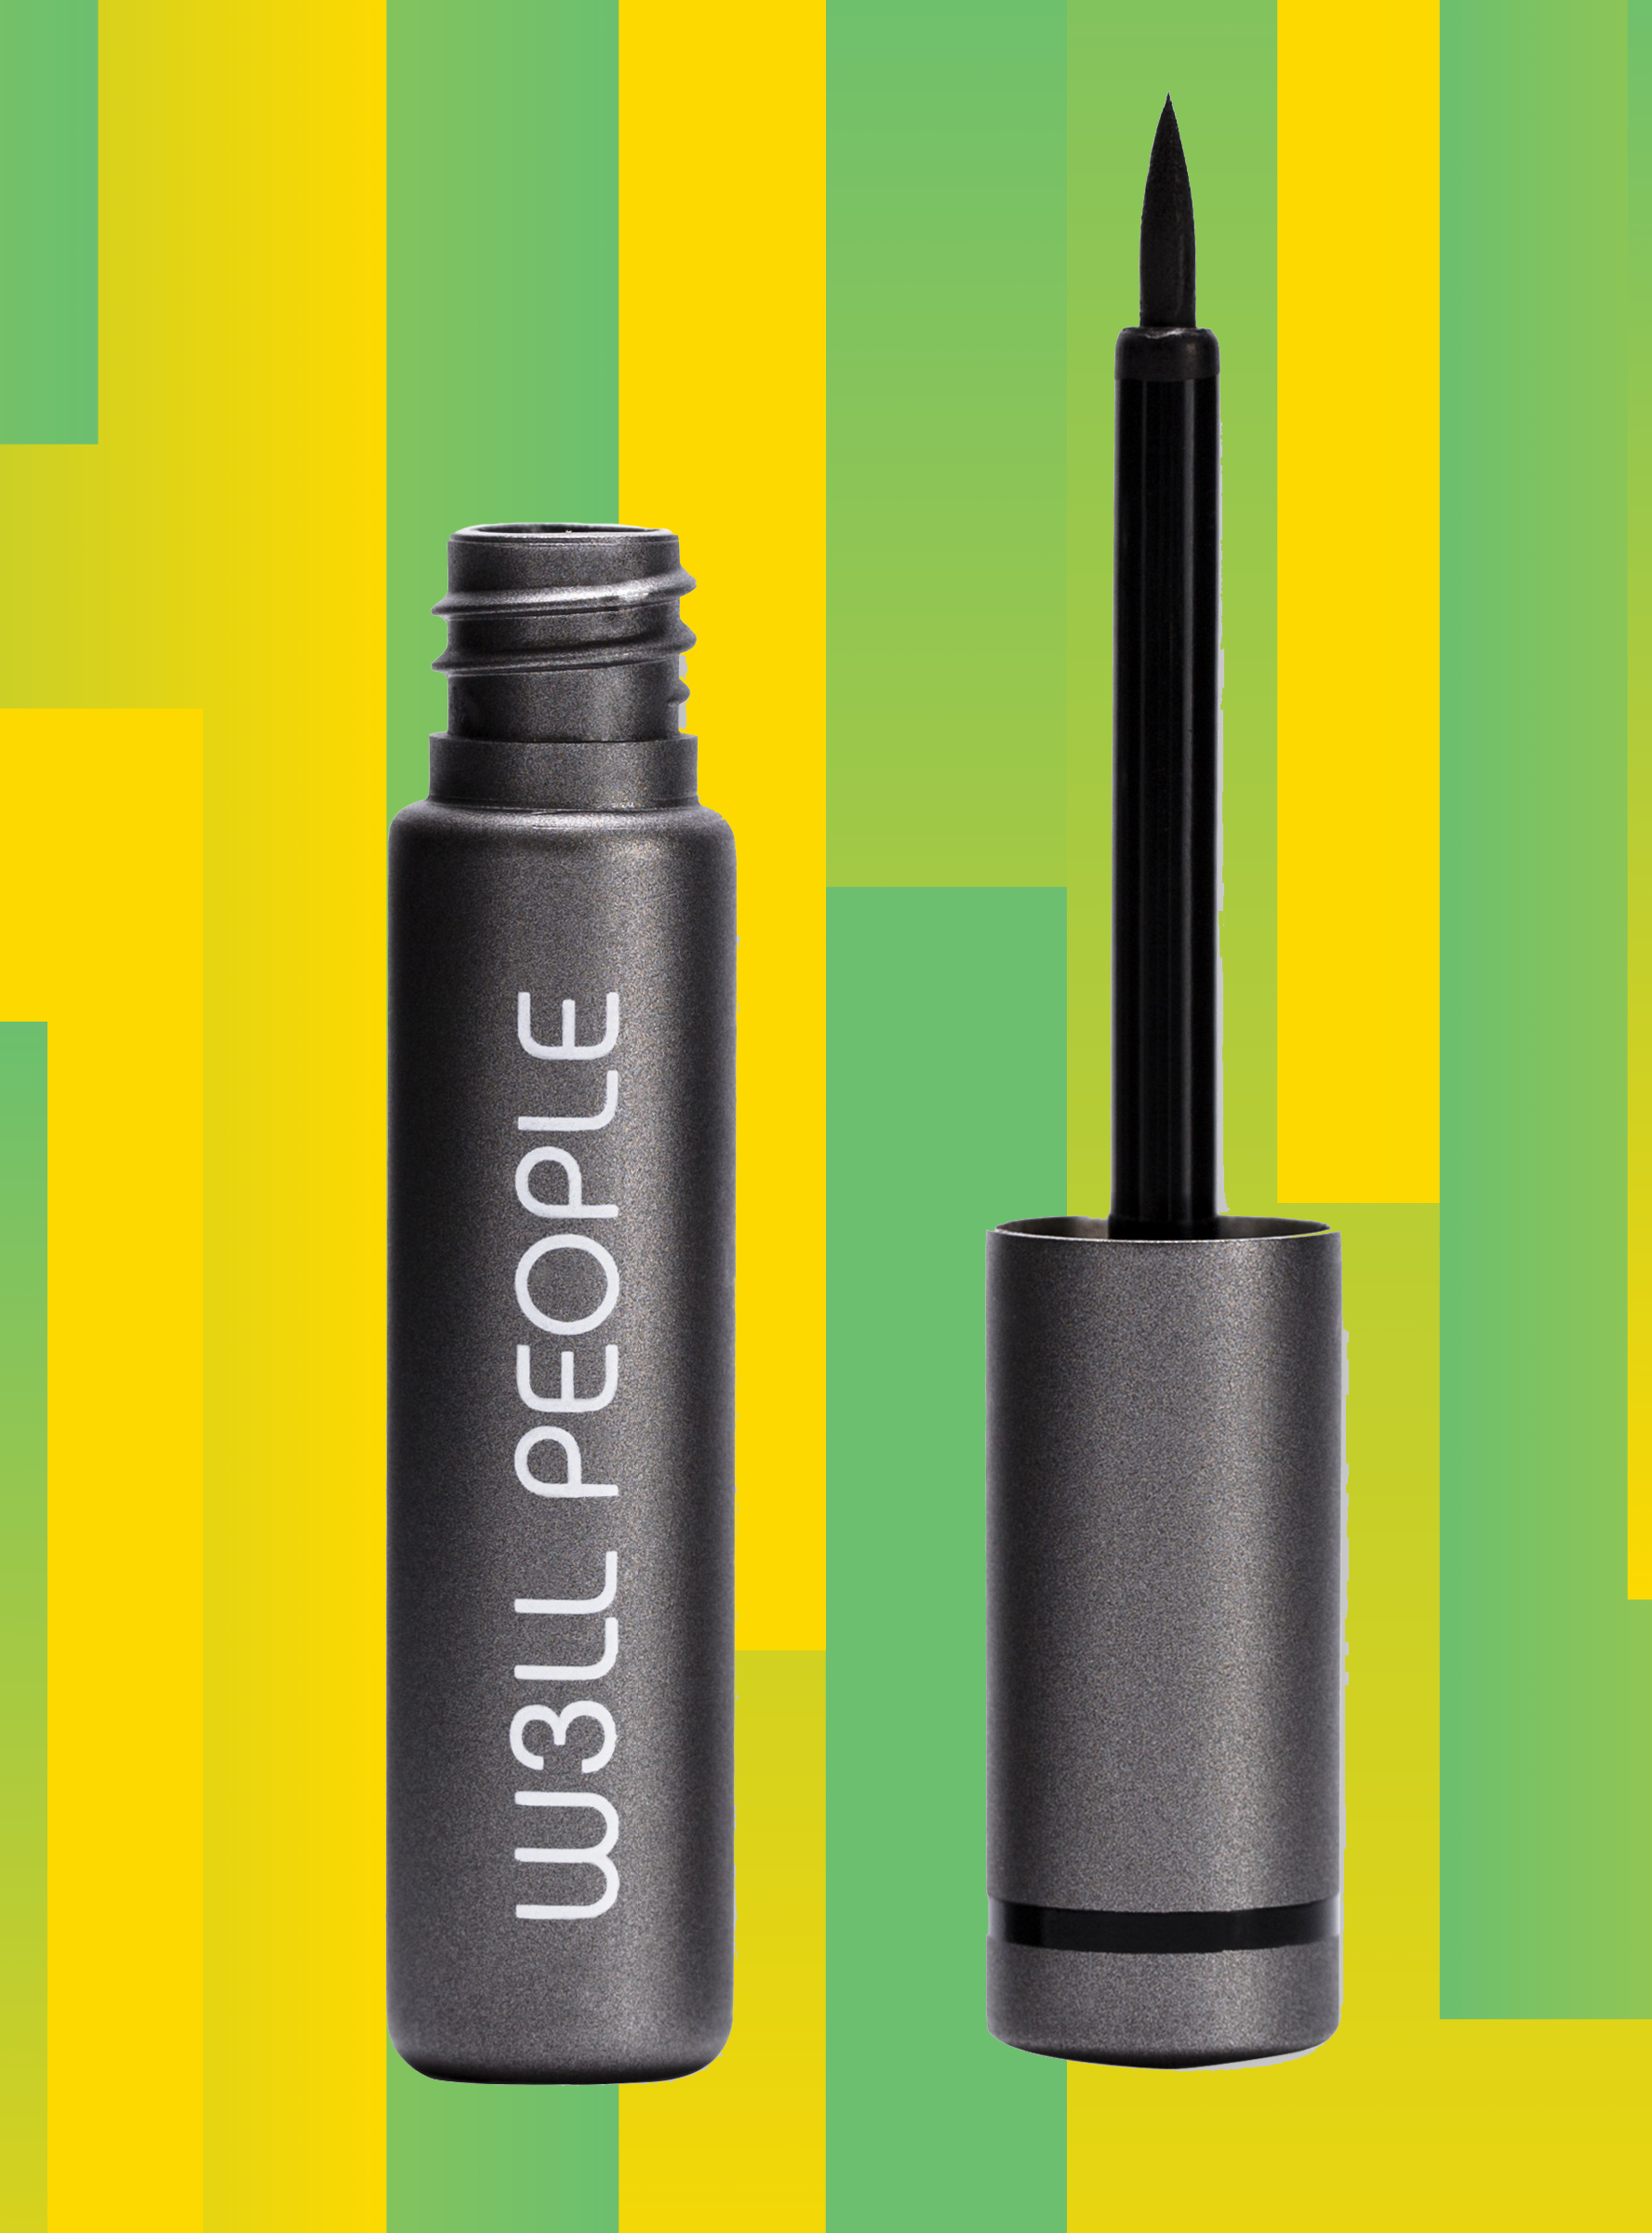 """8 Indie Makeup Buys That No One Else Will Have #refinery29  http://www.refinery29.com/indie-makeup-alternatives#slide-14  You'll love...This blendable formula applies just the right amount of color to the lips and cheeks, while also moisturizing them with a formula rich in shea and cocoa butters. 100% Pure Fruit Pigmented Lip & Cheek Tint in Peach Glow, $25, available at <a href=""""https://www.100percentpure.com/collections/cheek-makeup/products/peach-glow-lip-cheek-tin..."""